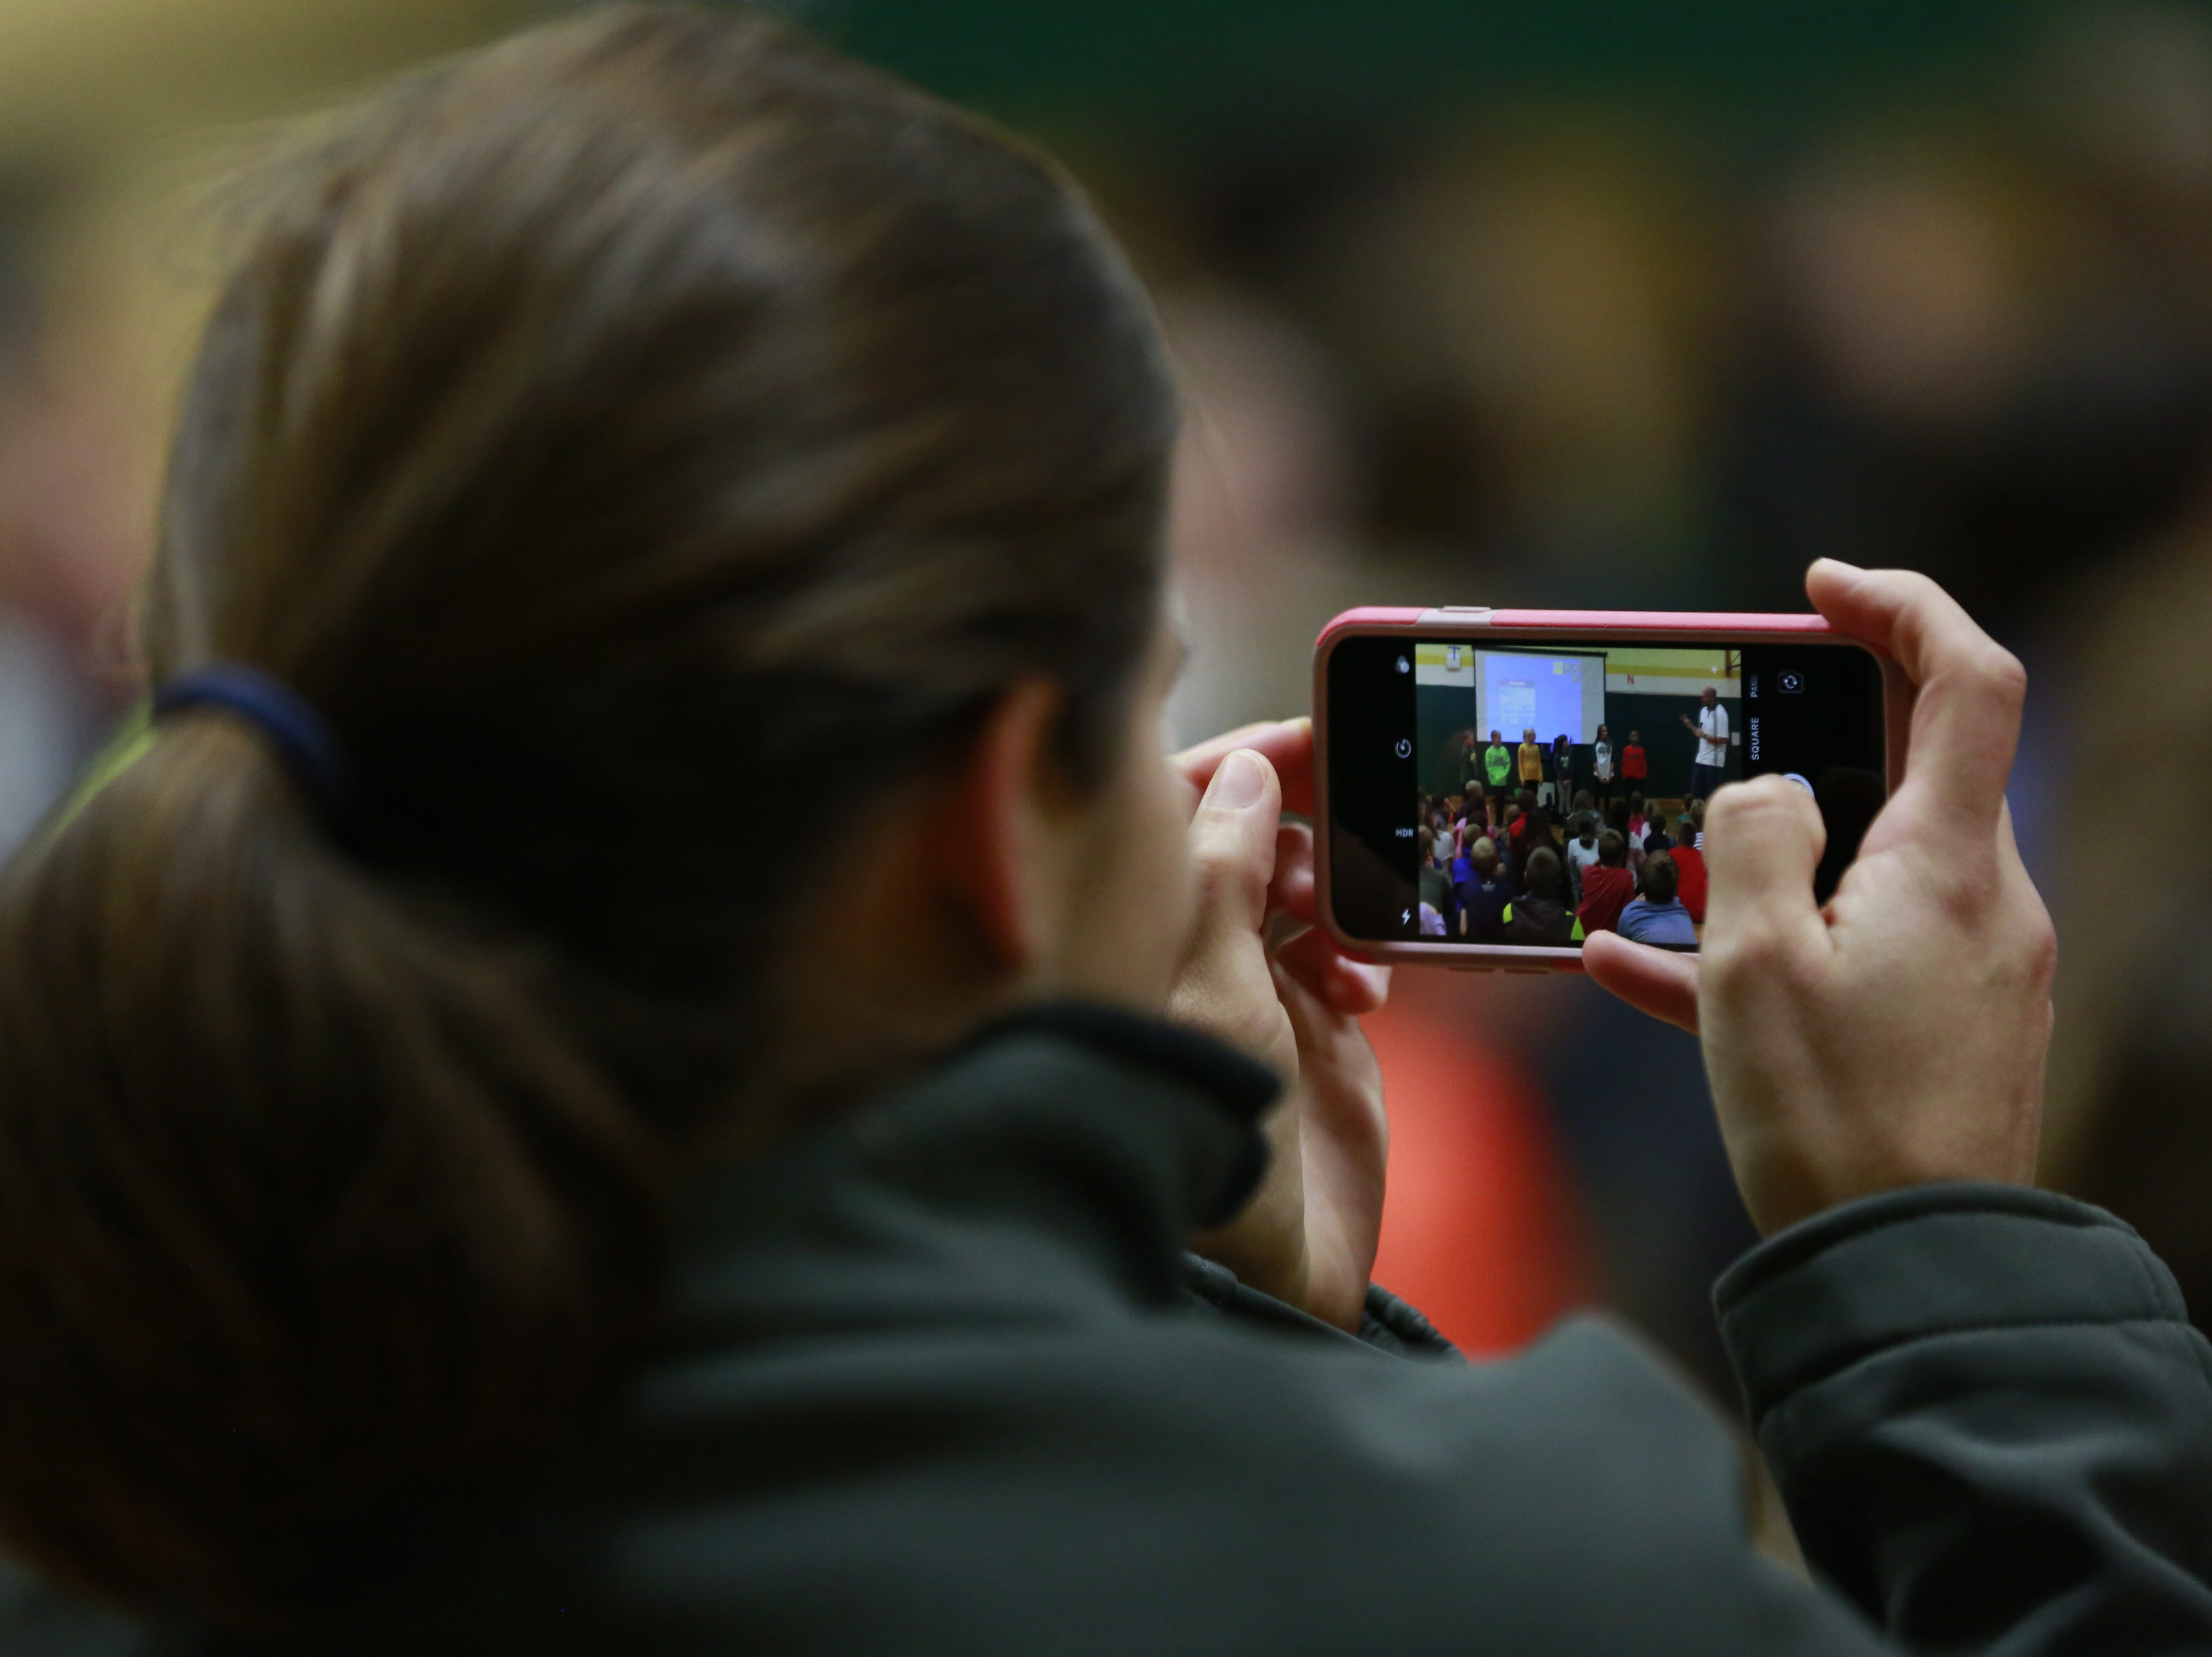 A teacher takes iPhone photo of students Monday, Oct. 15, 2018, during the Anti-Bullying Relentless Tour to Visit Wisconsin at Weston Elementary School in Weston, Wis. T'xer Zhon Kha/USA TODAY NETWORK-Wisconsin